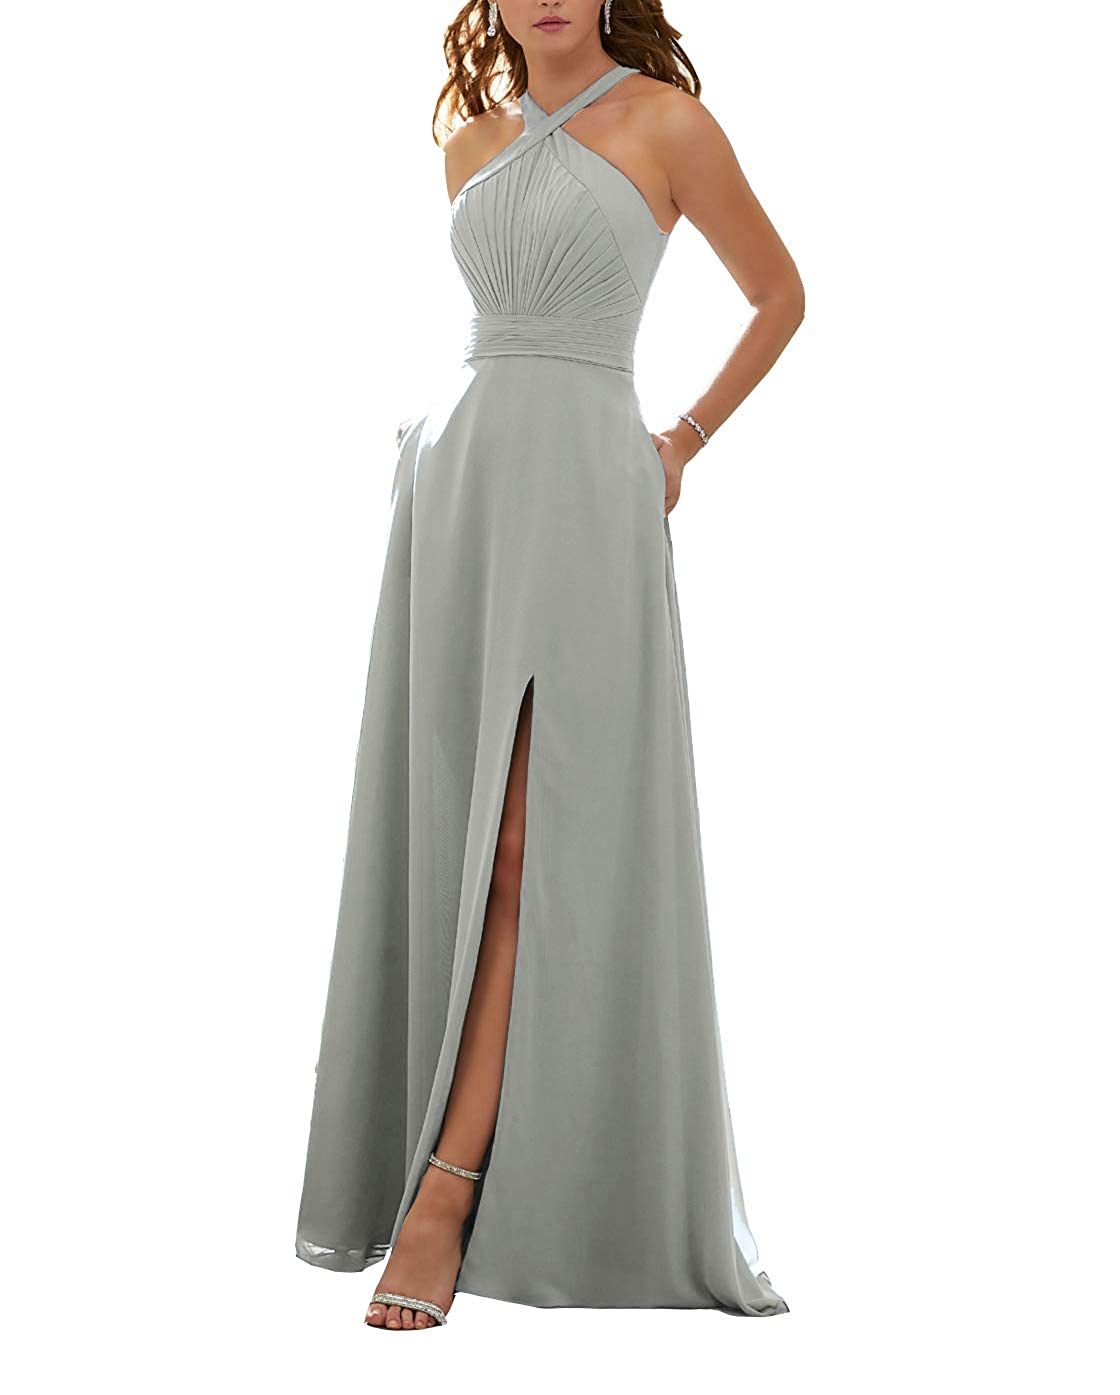 Silver Stylefun Women's Halter Bridesmaid Dresses Slit 2019 Formal Prom Evening Party Gowns with Side Pockets KN010